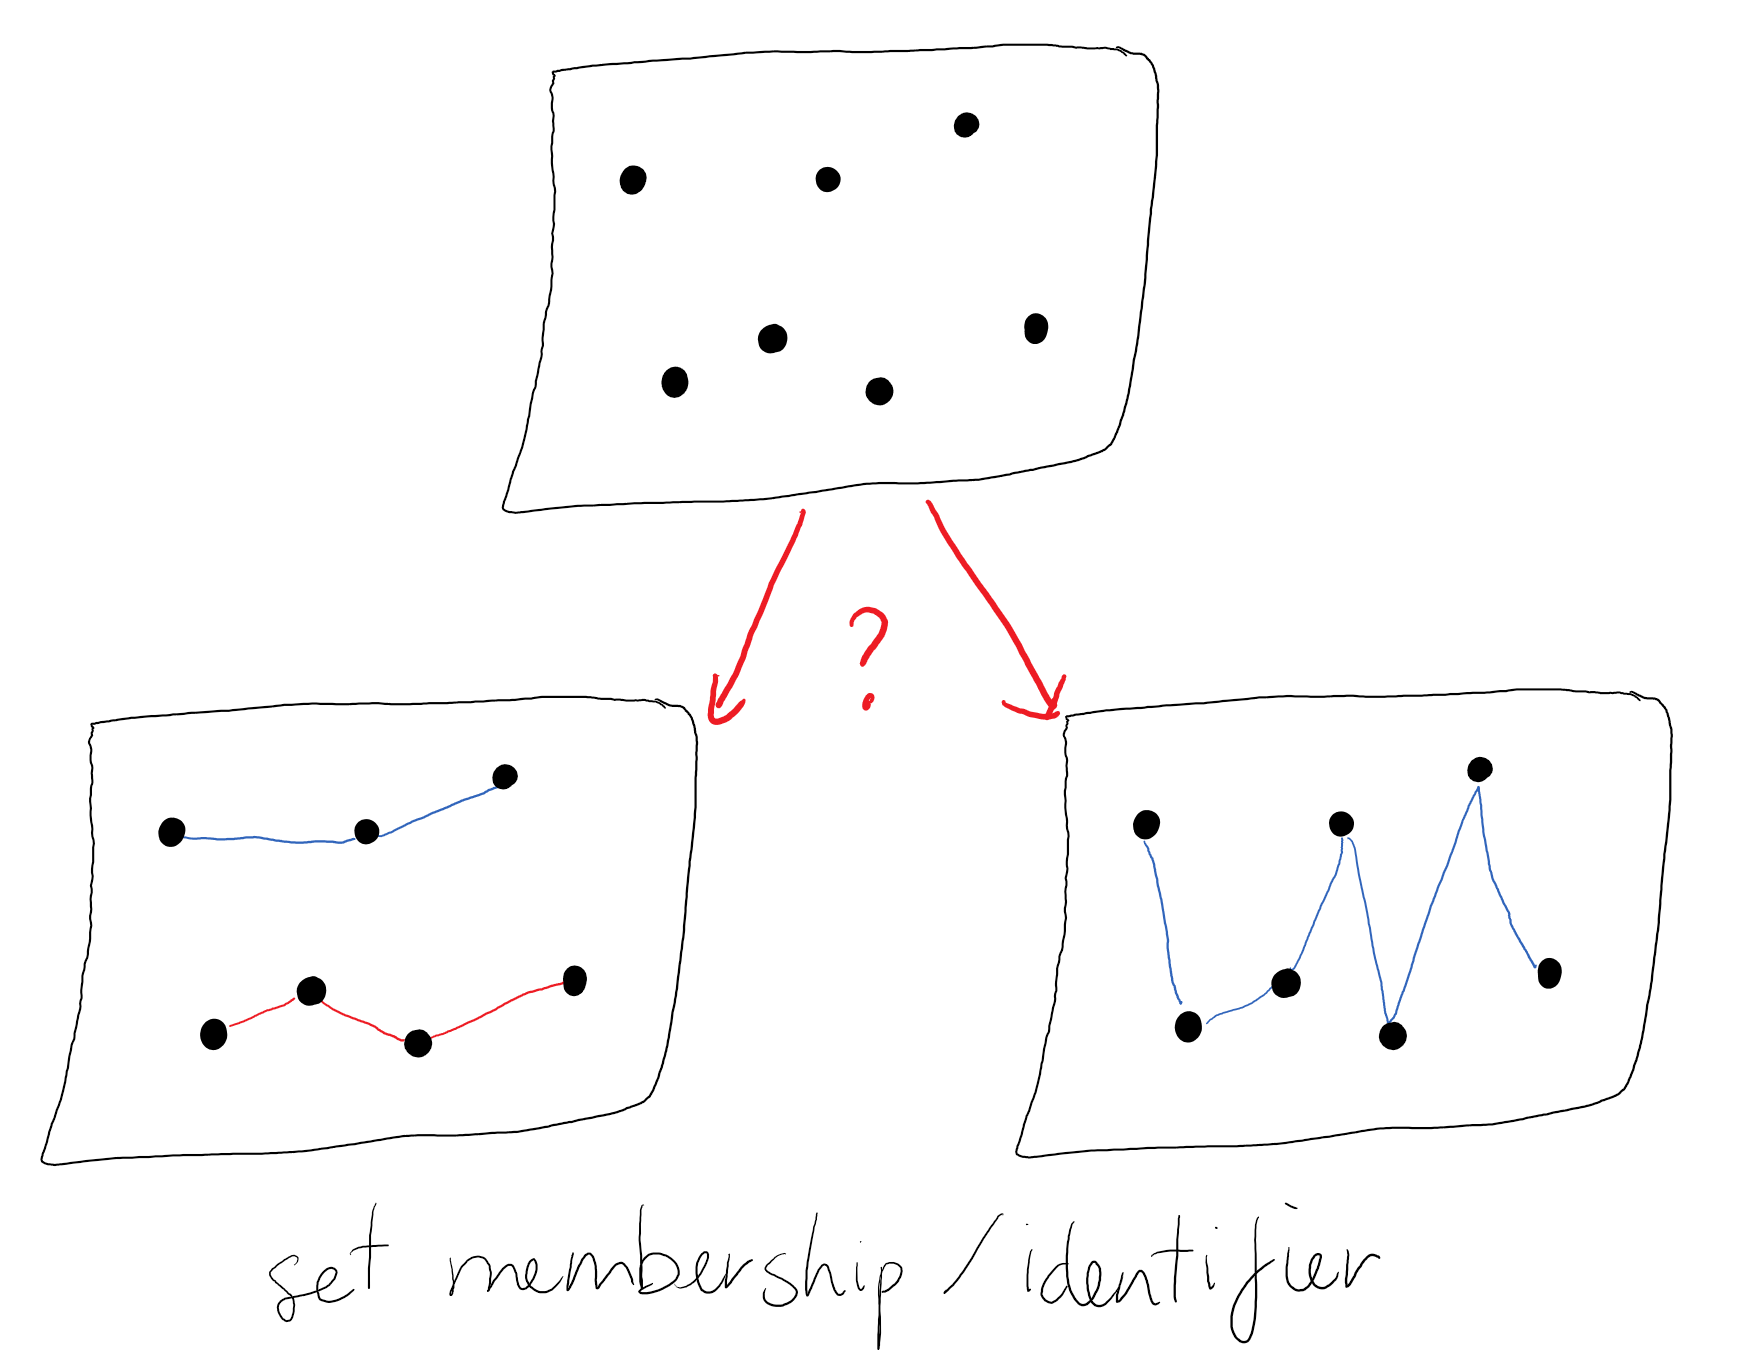 set membership/how we associate points together